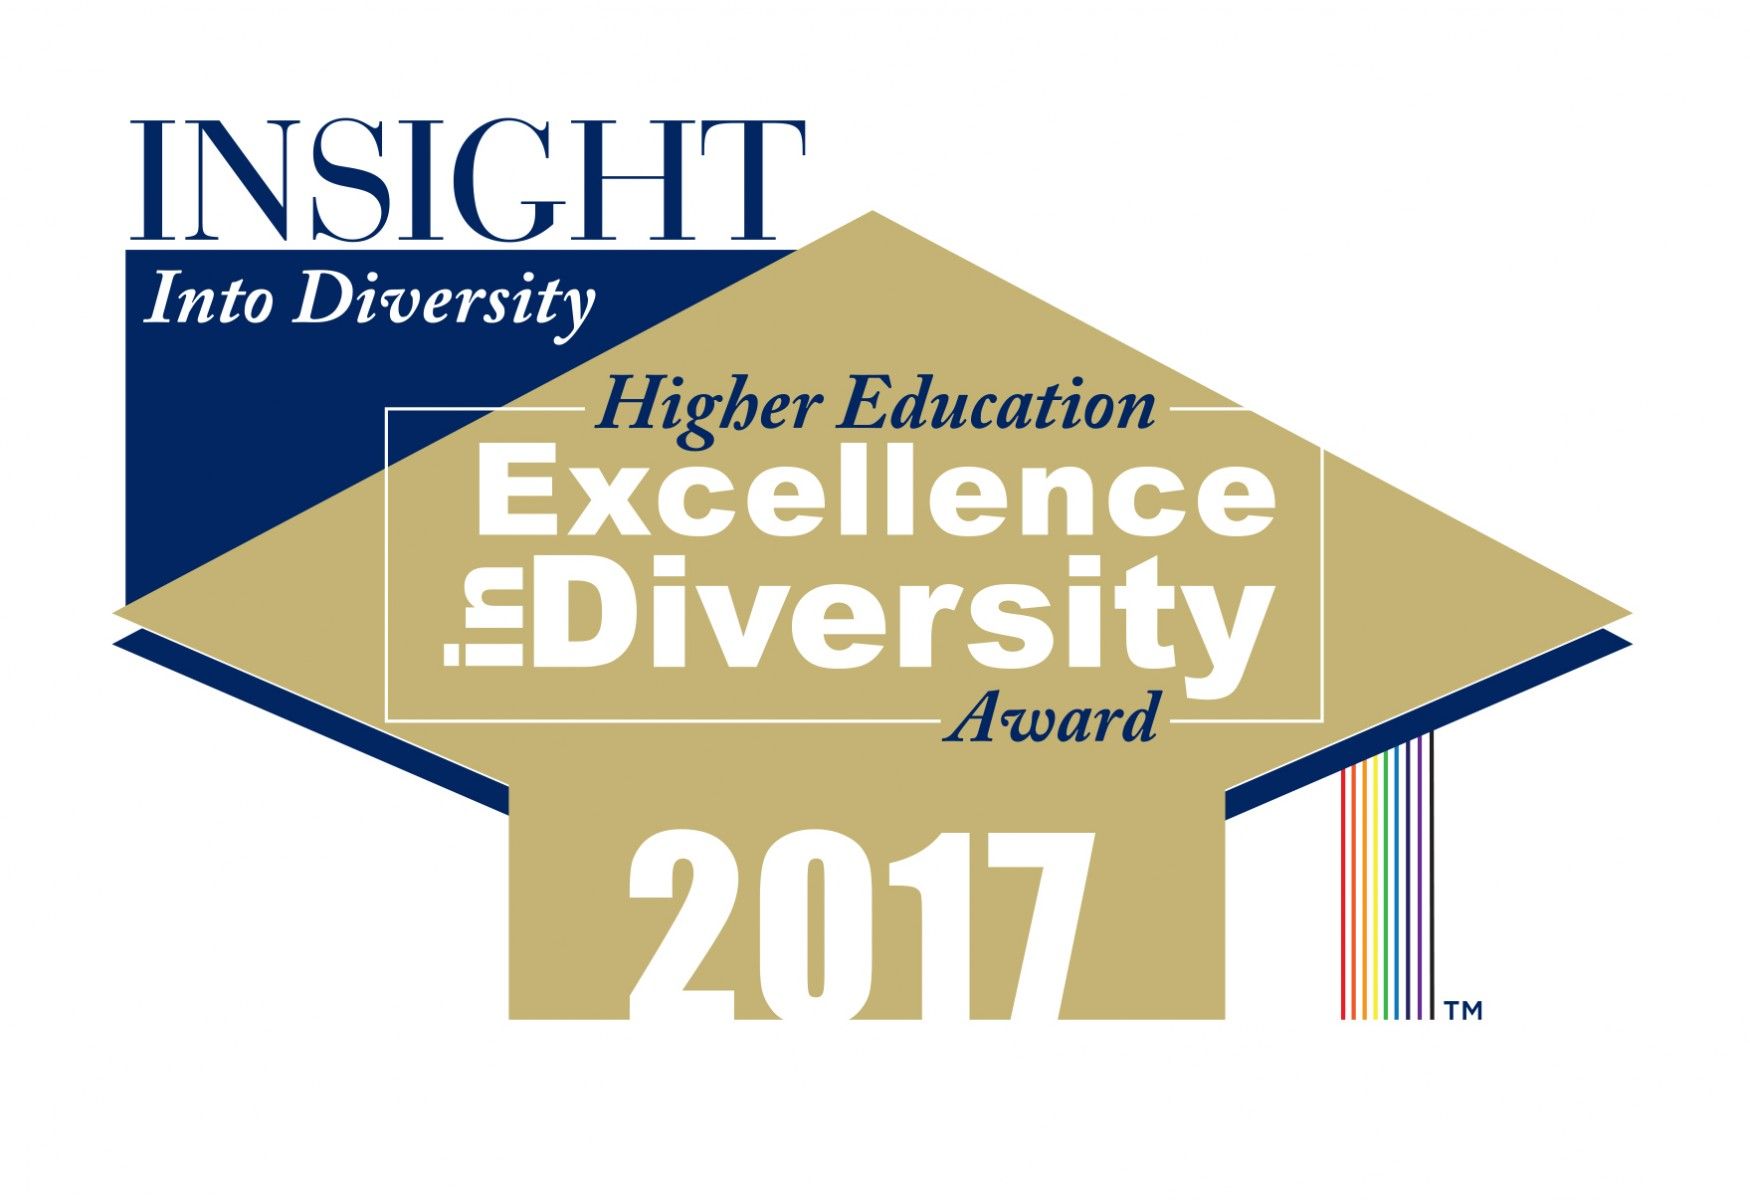 Higher Education Excellence in Diversity Award